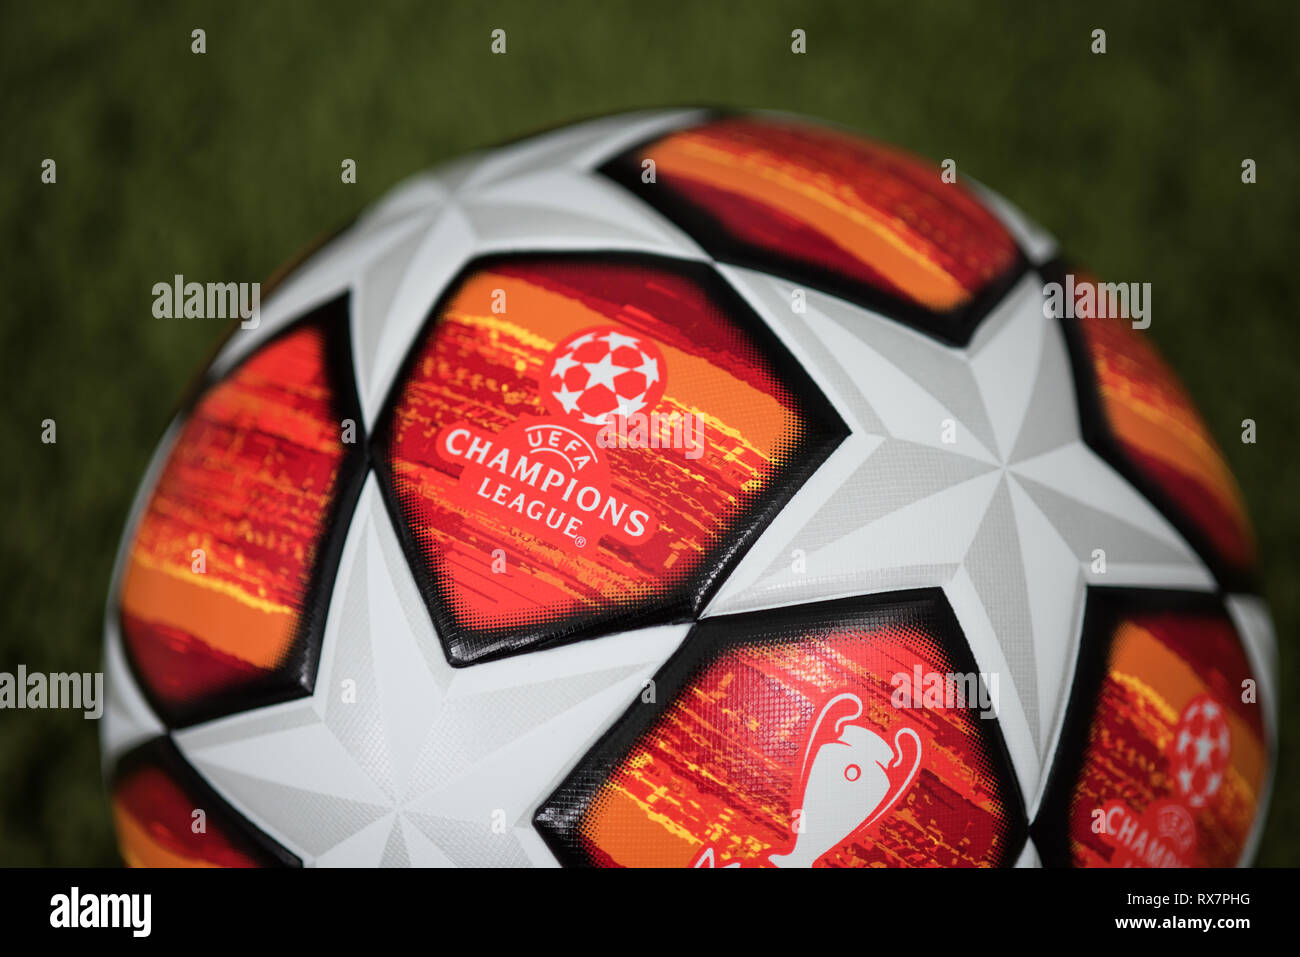 60b09861d Close up of Adidas UEFA Champions League Final Football. Madrid 2019. -  Stock Image